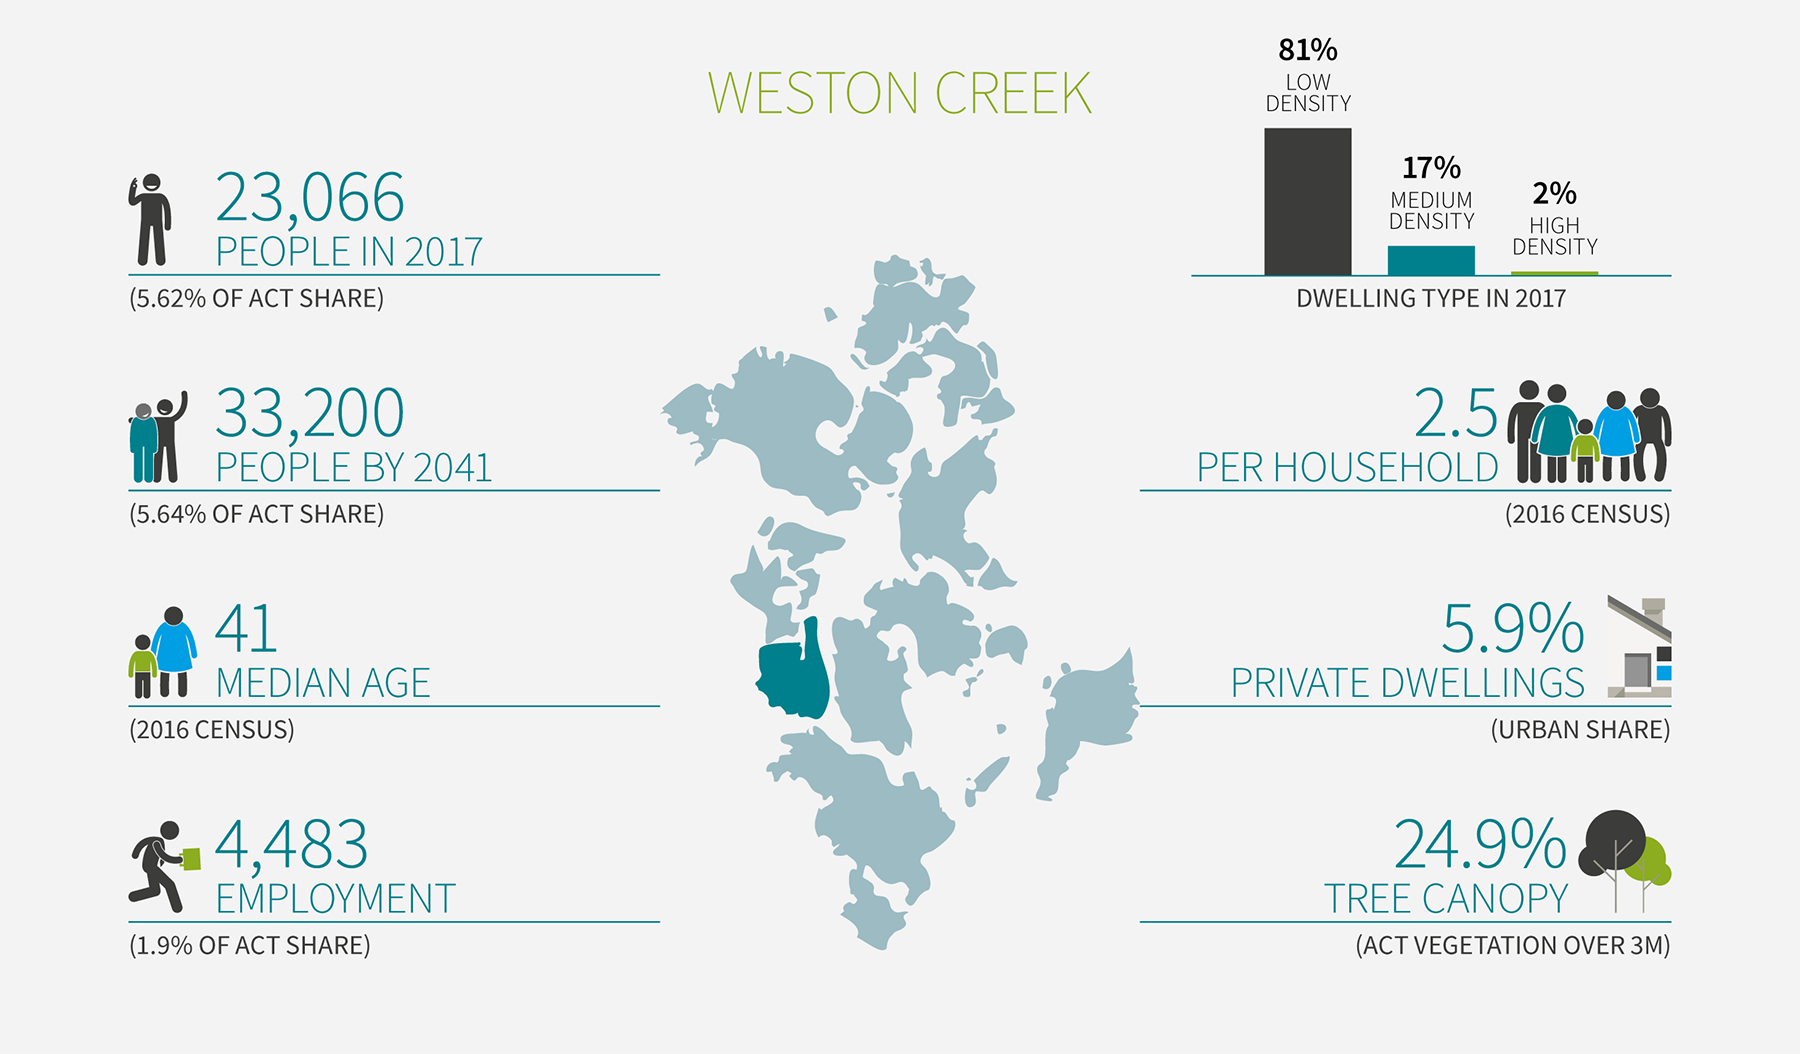 Stylised map of the ACT region, with the Weston Creek district highlighted, and statistics about the disrict as detailed in the table on this page.